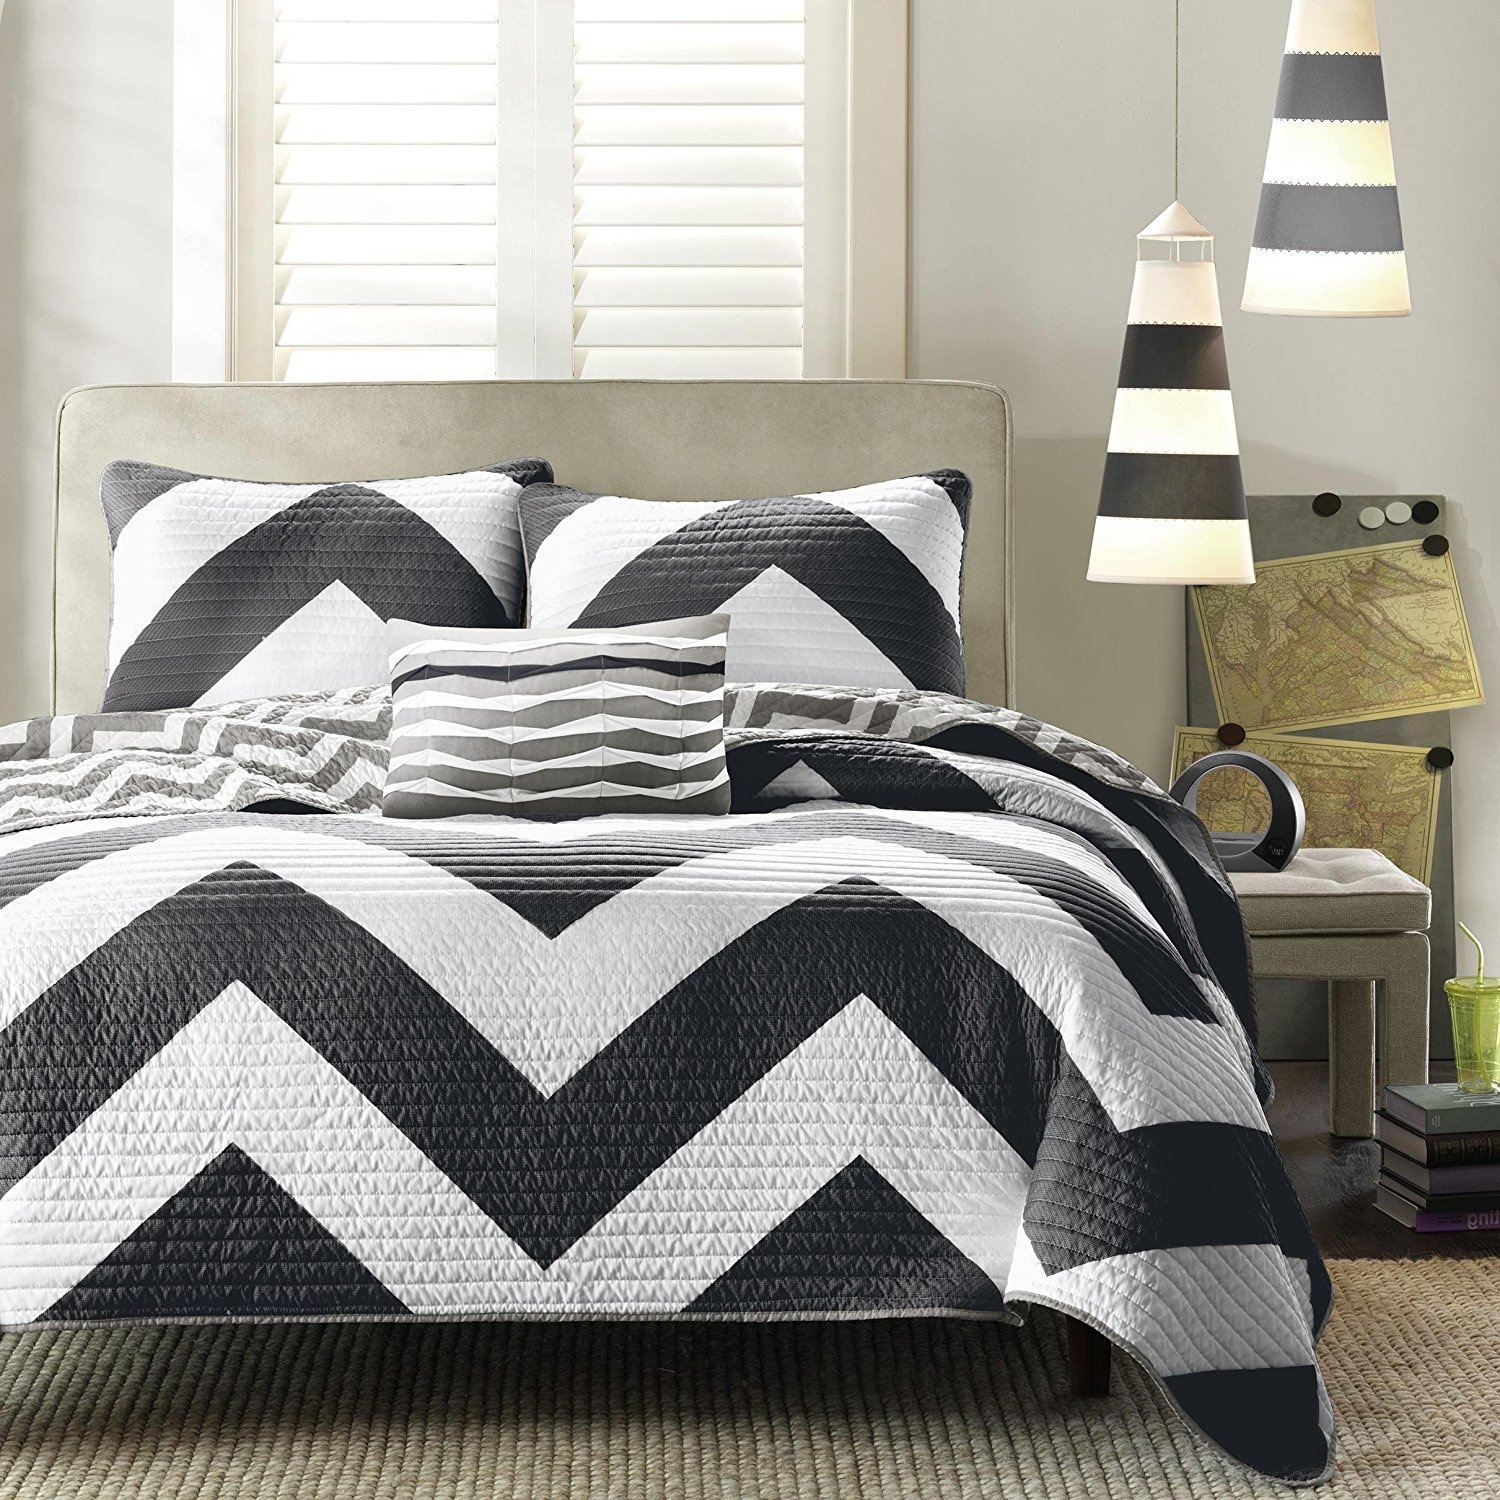 F&W 4 Piece Beautiful Black White King Quilt Set, Chevron Pattern Themed Reversible Bedding Zig Zag Chic Geometric Trendy Modern Grey Contemporary Vibrant Stylish Bold, Polyester